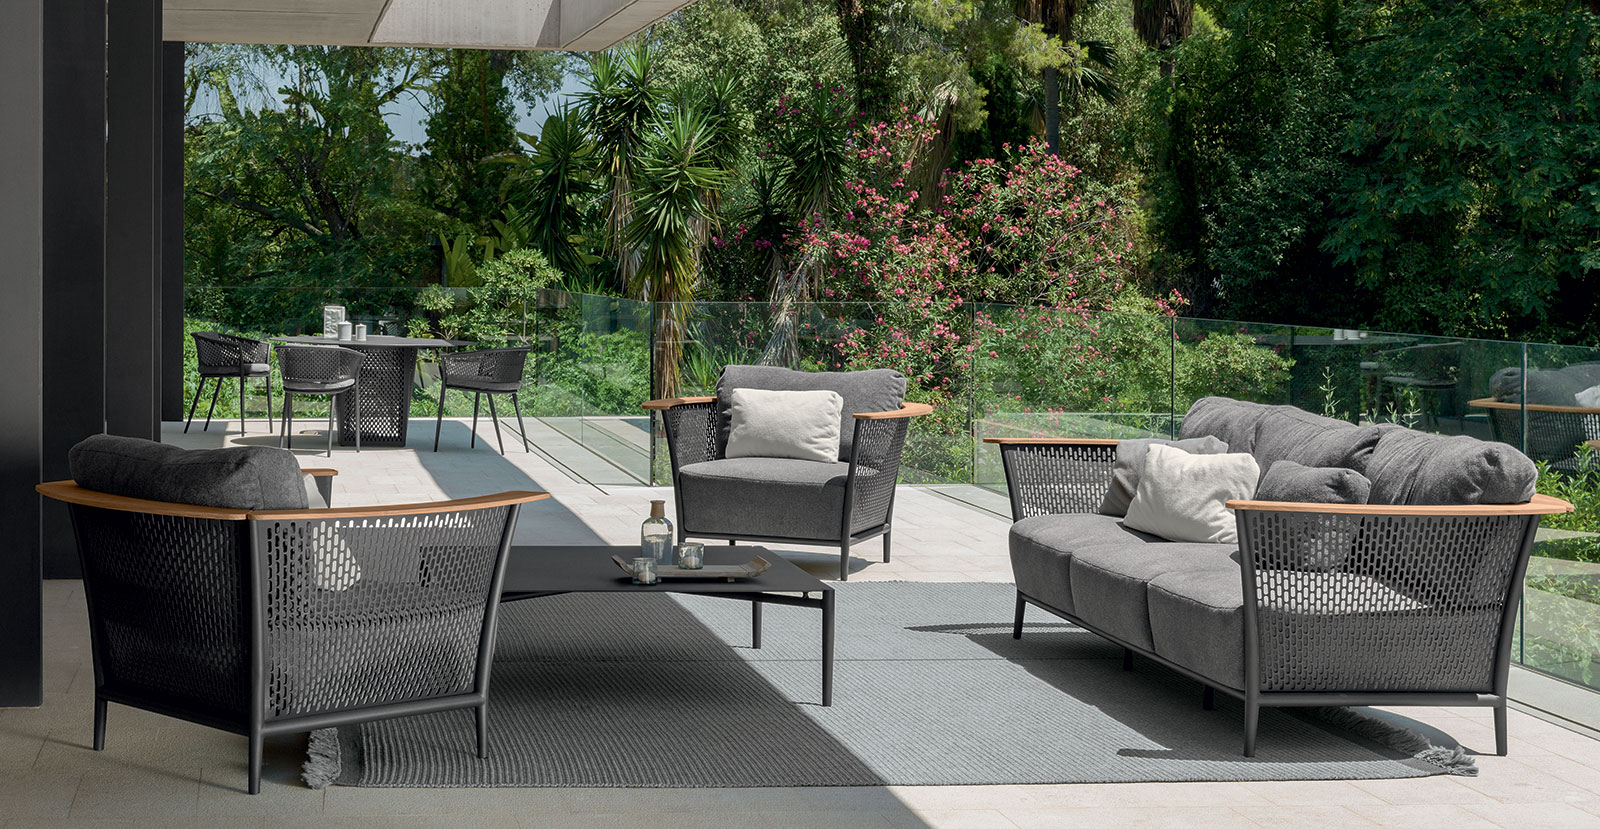 pascal salon exterieur salotto giardino outdoor lounge set